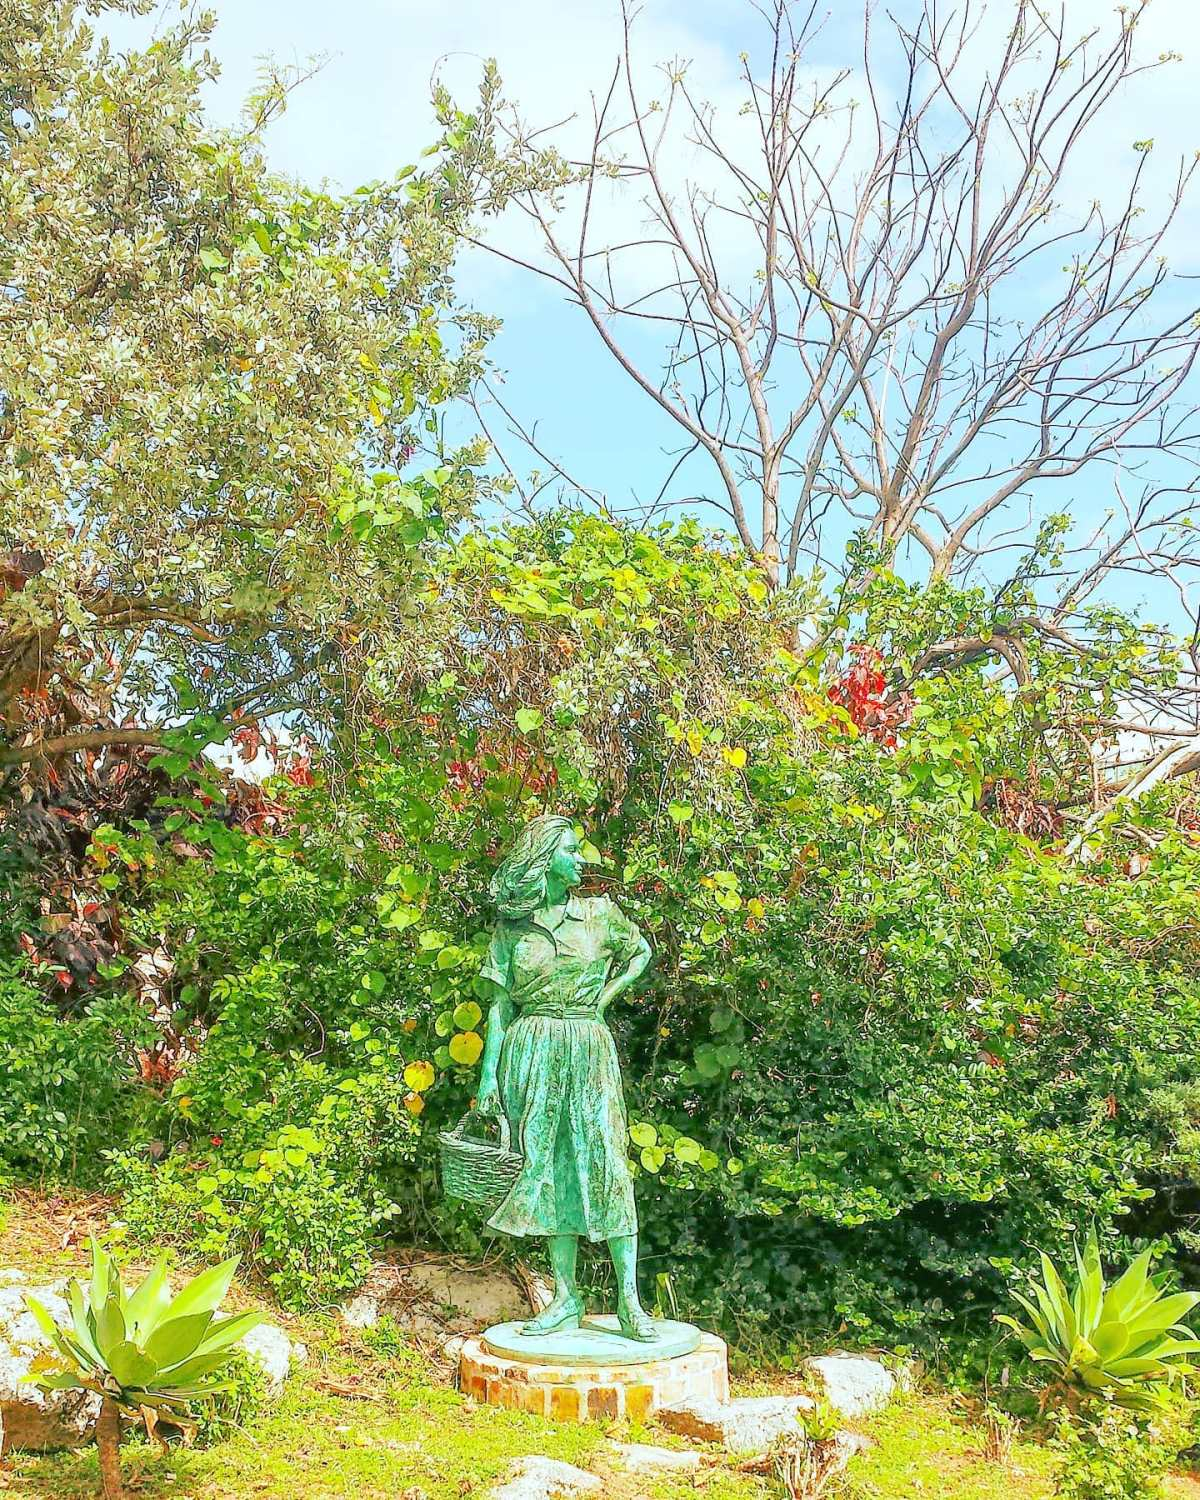 While in the Hamilton park... ‍♀️🤙 Hamilton, Bermuda 2015#bermuda #hamilton #travelpics #naturegram #travelling #travelphotography #traveladdict #green #travel #park #garden #art #travelstoke #traveler #travelblog #travelholic #traveller #travelingram #travels #travelgram #travelawesome #scolpture #naturephotography #nature #traveling #digitalart #travellife #travelphoto